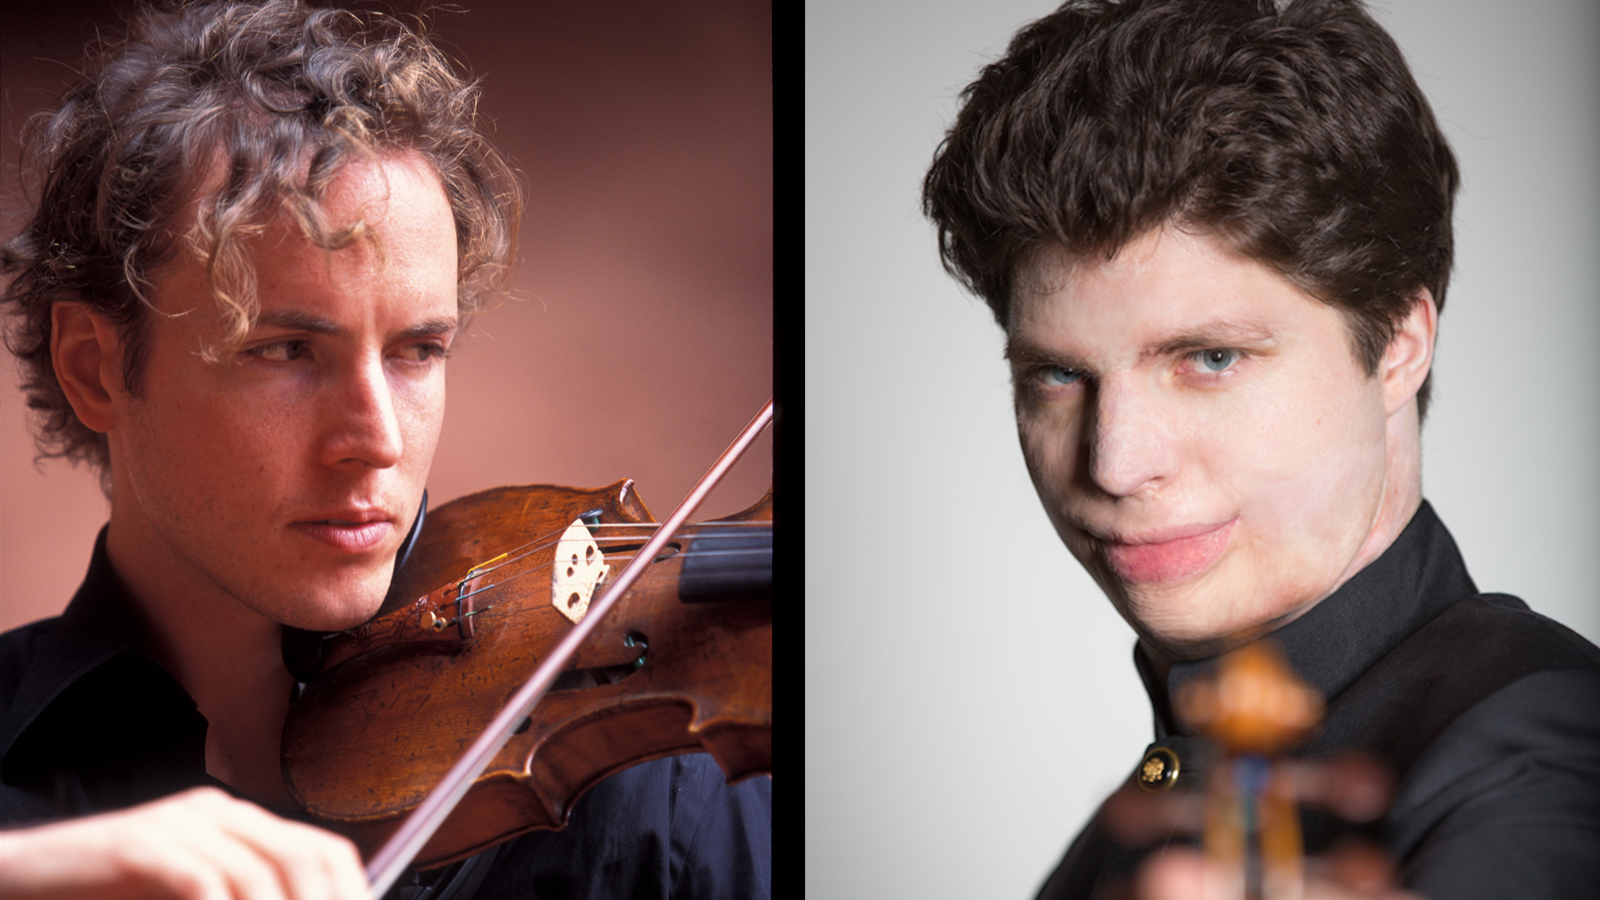 Tim Fain and Augustin Hadelich